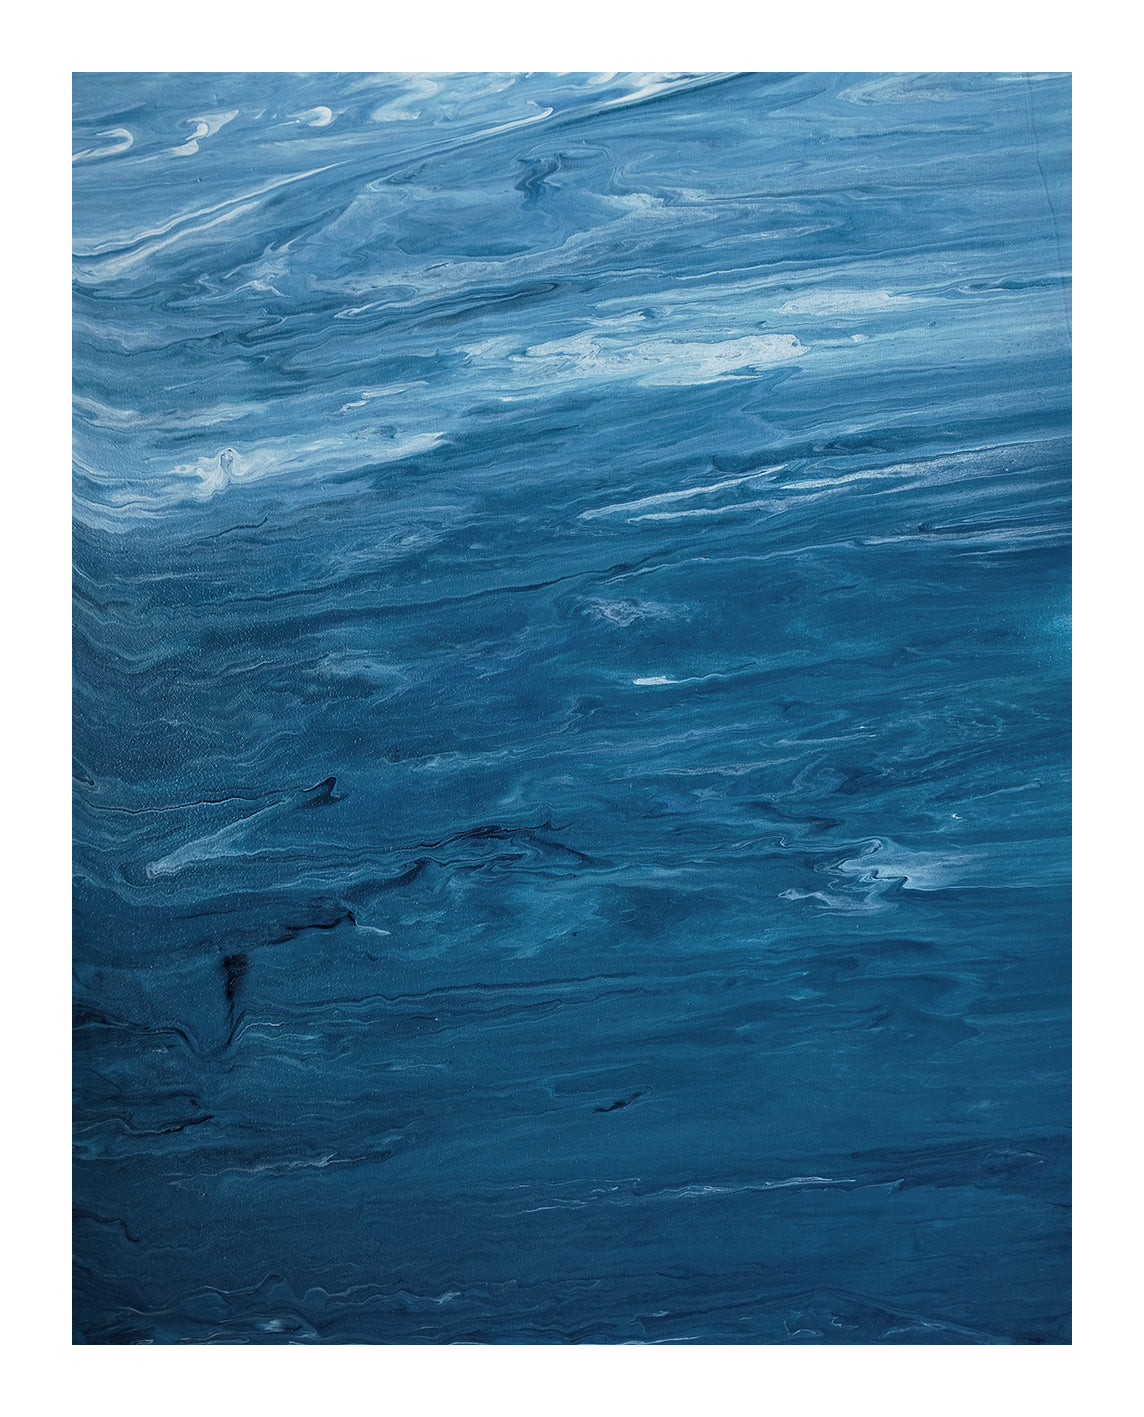 Ocean III - Ocean Abstract Acrylic Painting - Art Print